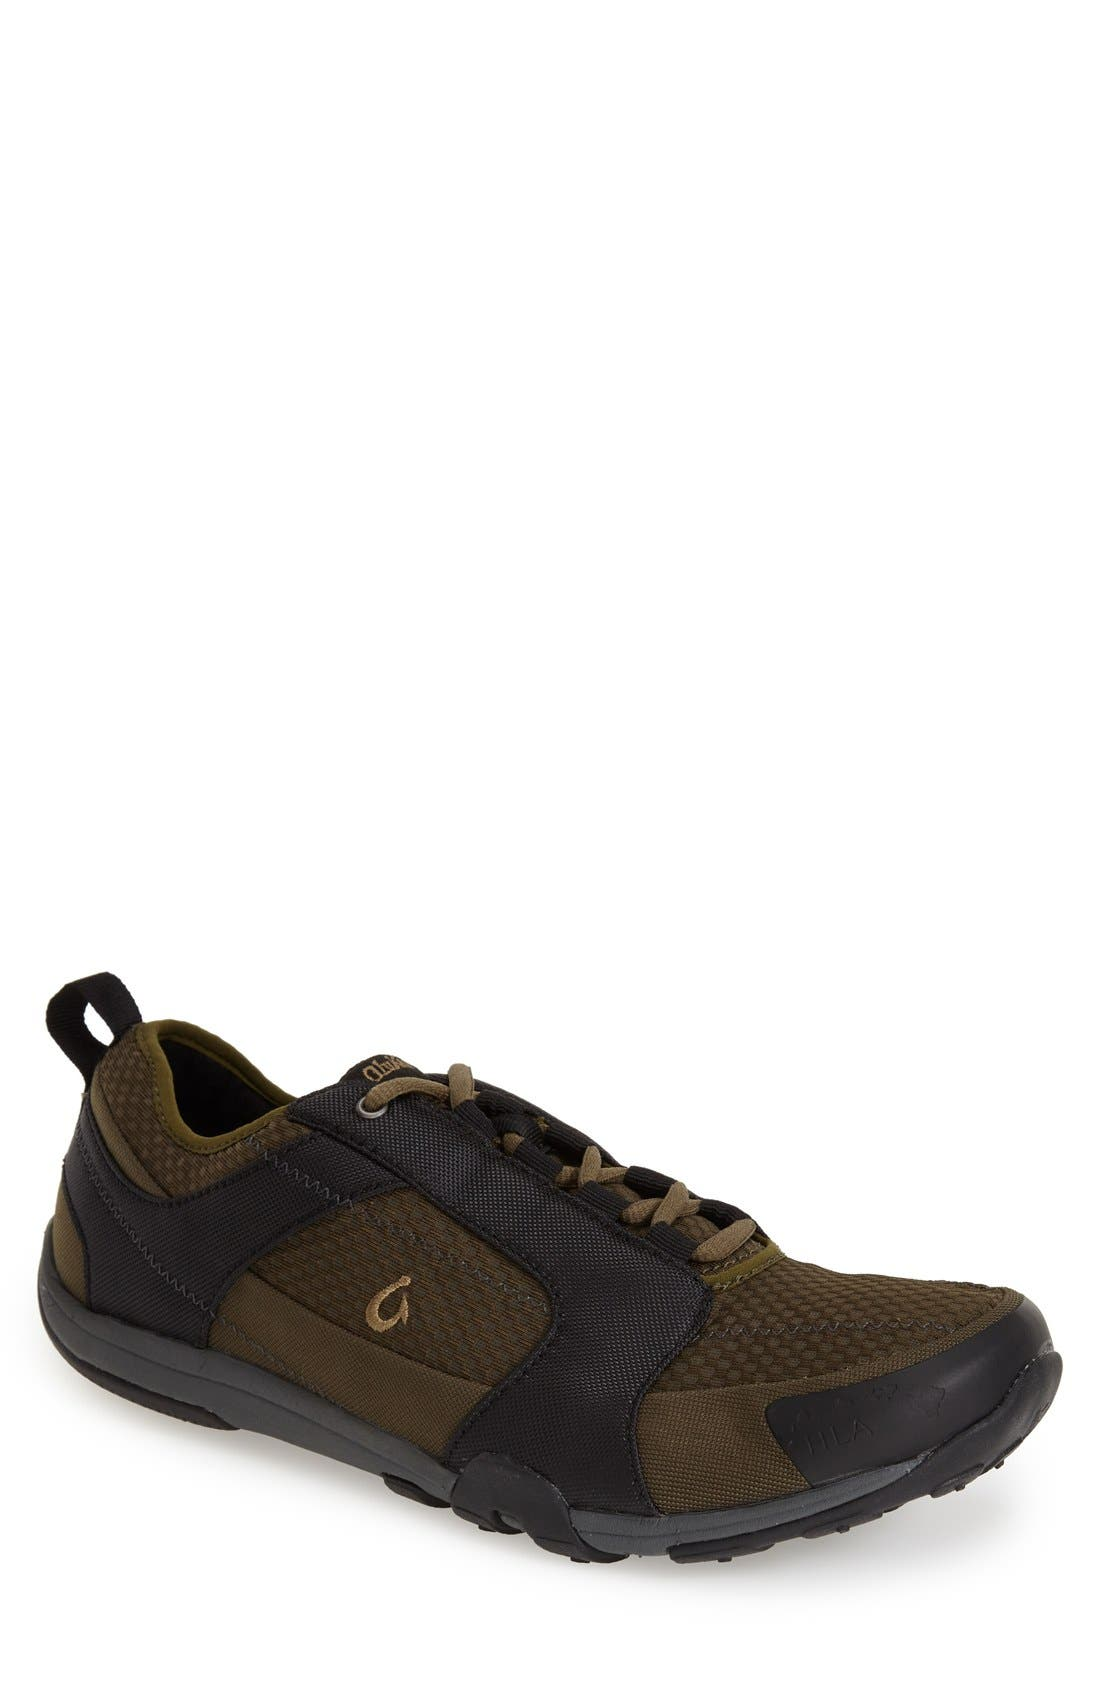 Alternate Image 1 Selected - OluKai 'Kamiki' Amphibious Sneaker (Men)